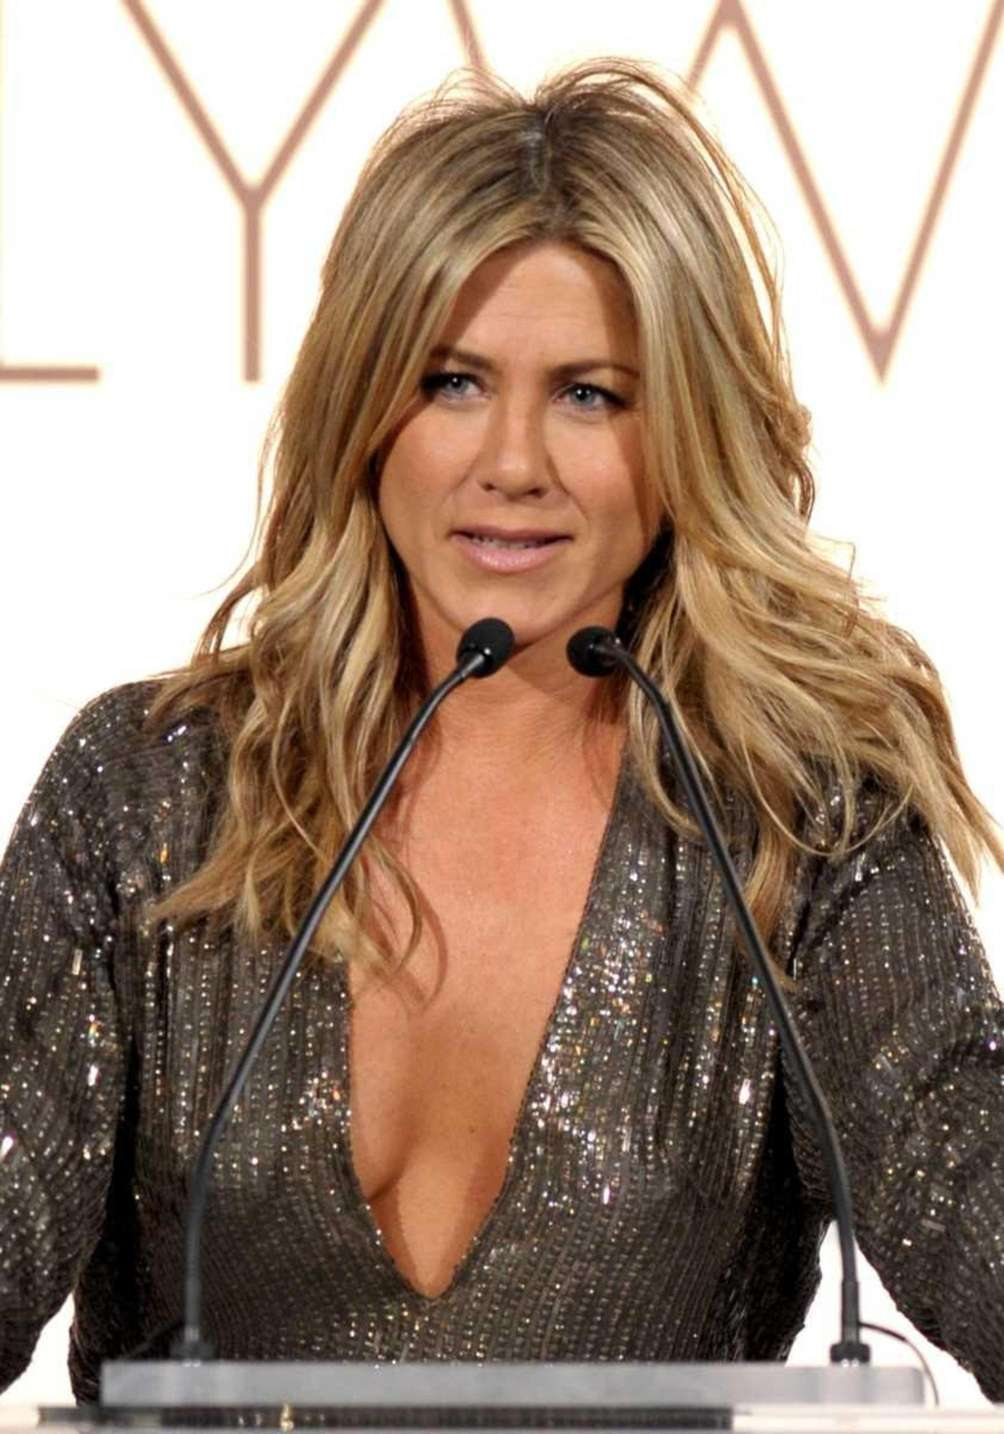 Honoree Jennifer Aniston speaks onstage during ELLE's 18th